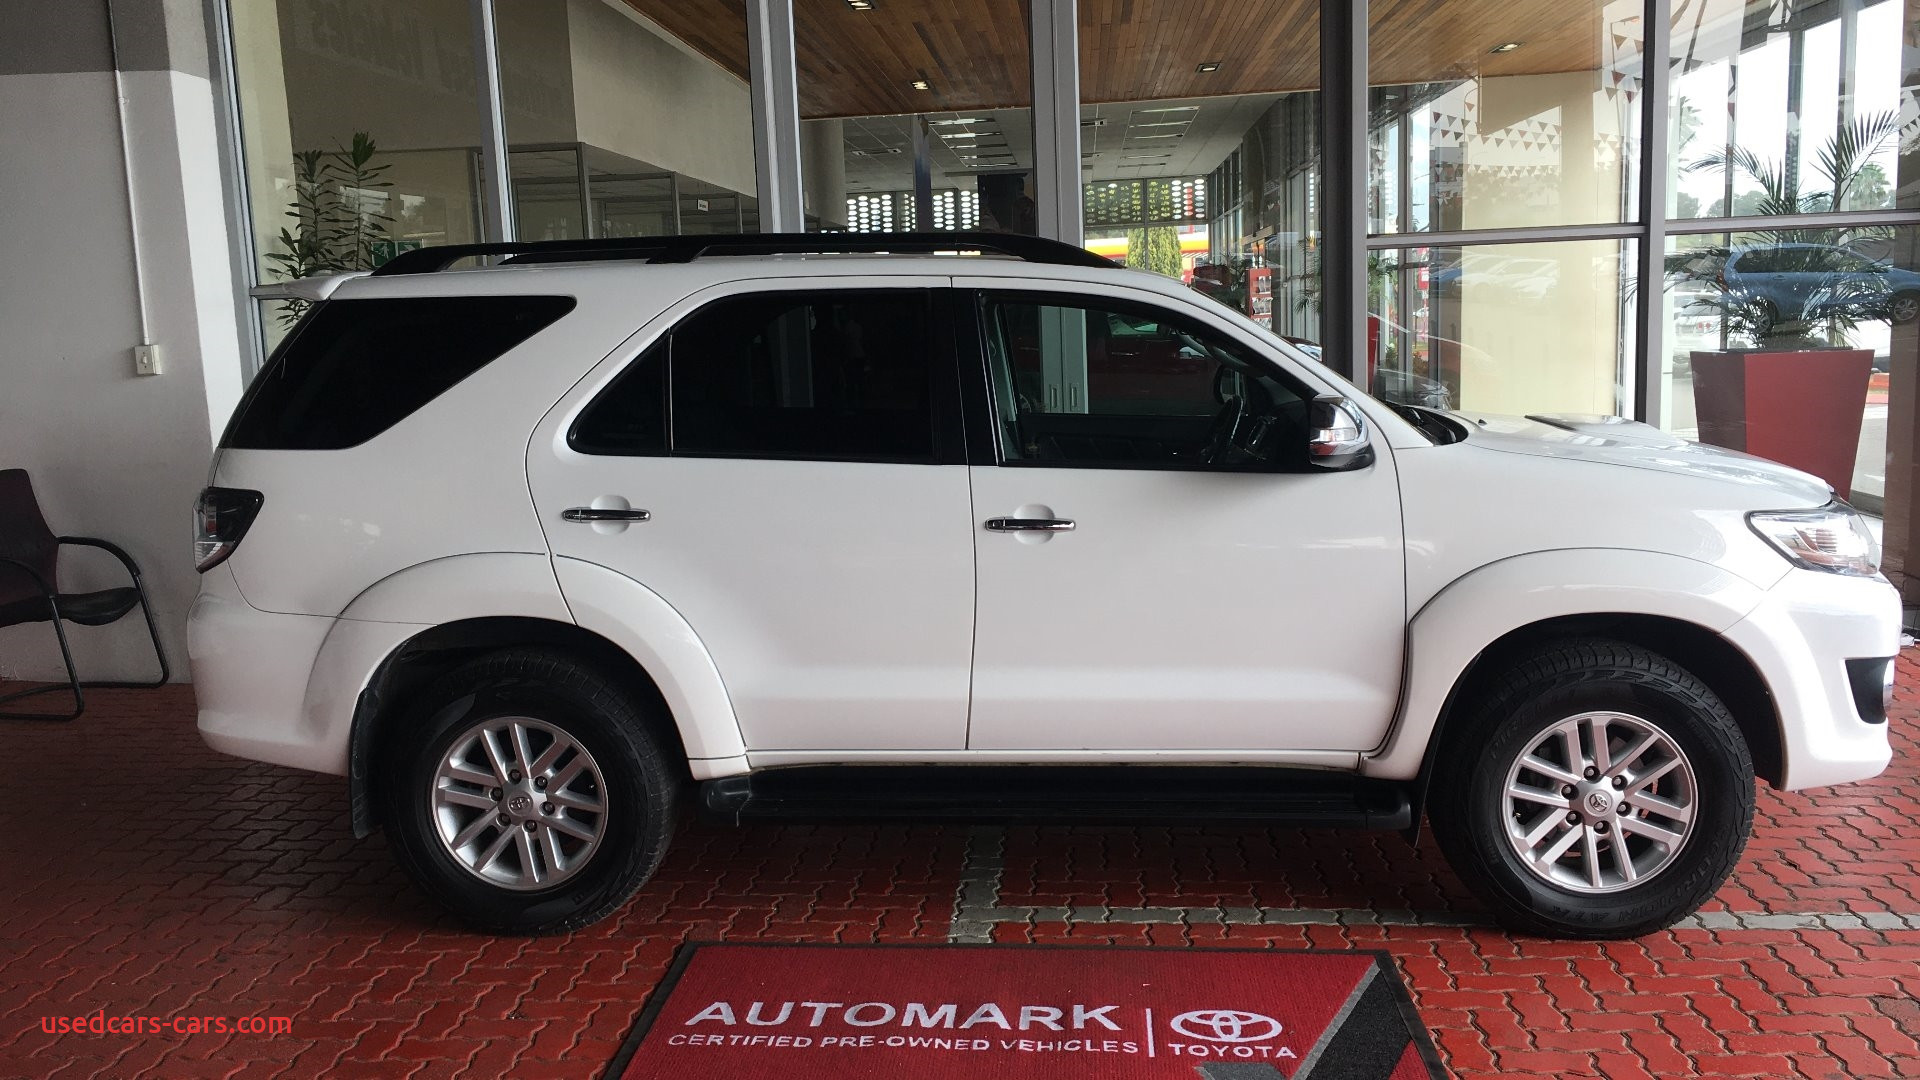 Used Cars for Sale Za New toyota fortuner fortuner 3 0d 4d 4x4 Auto for Sale In